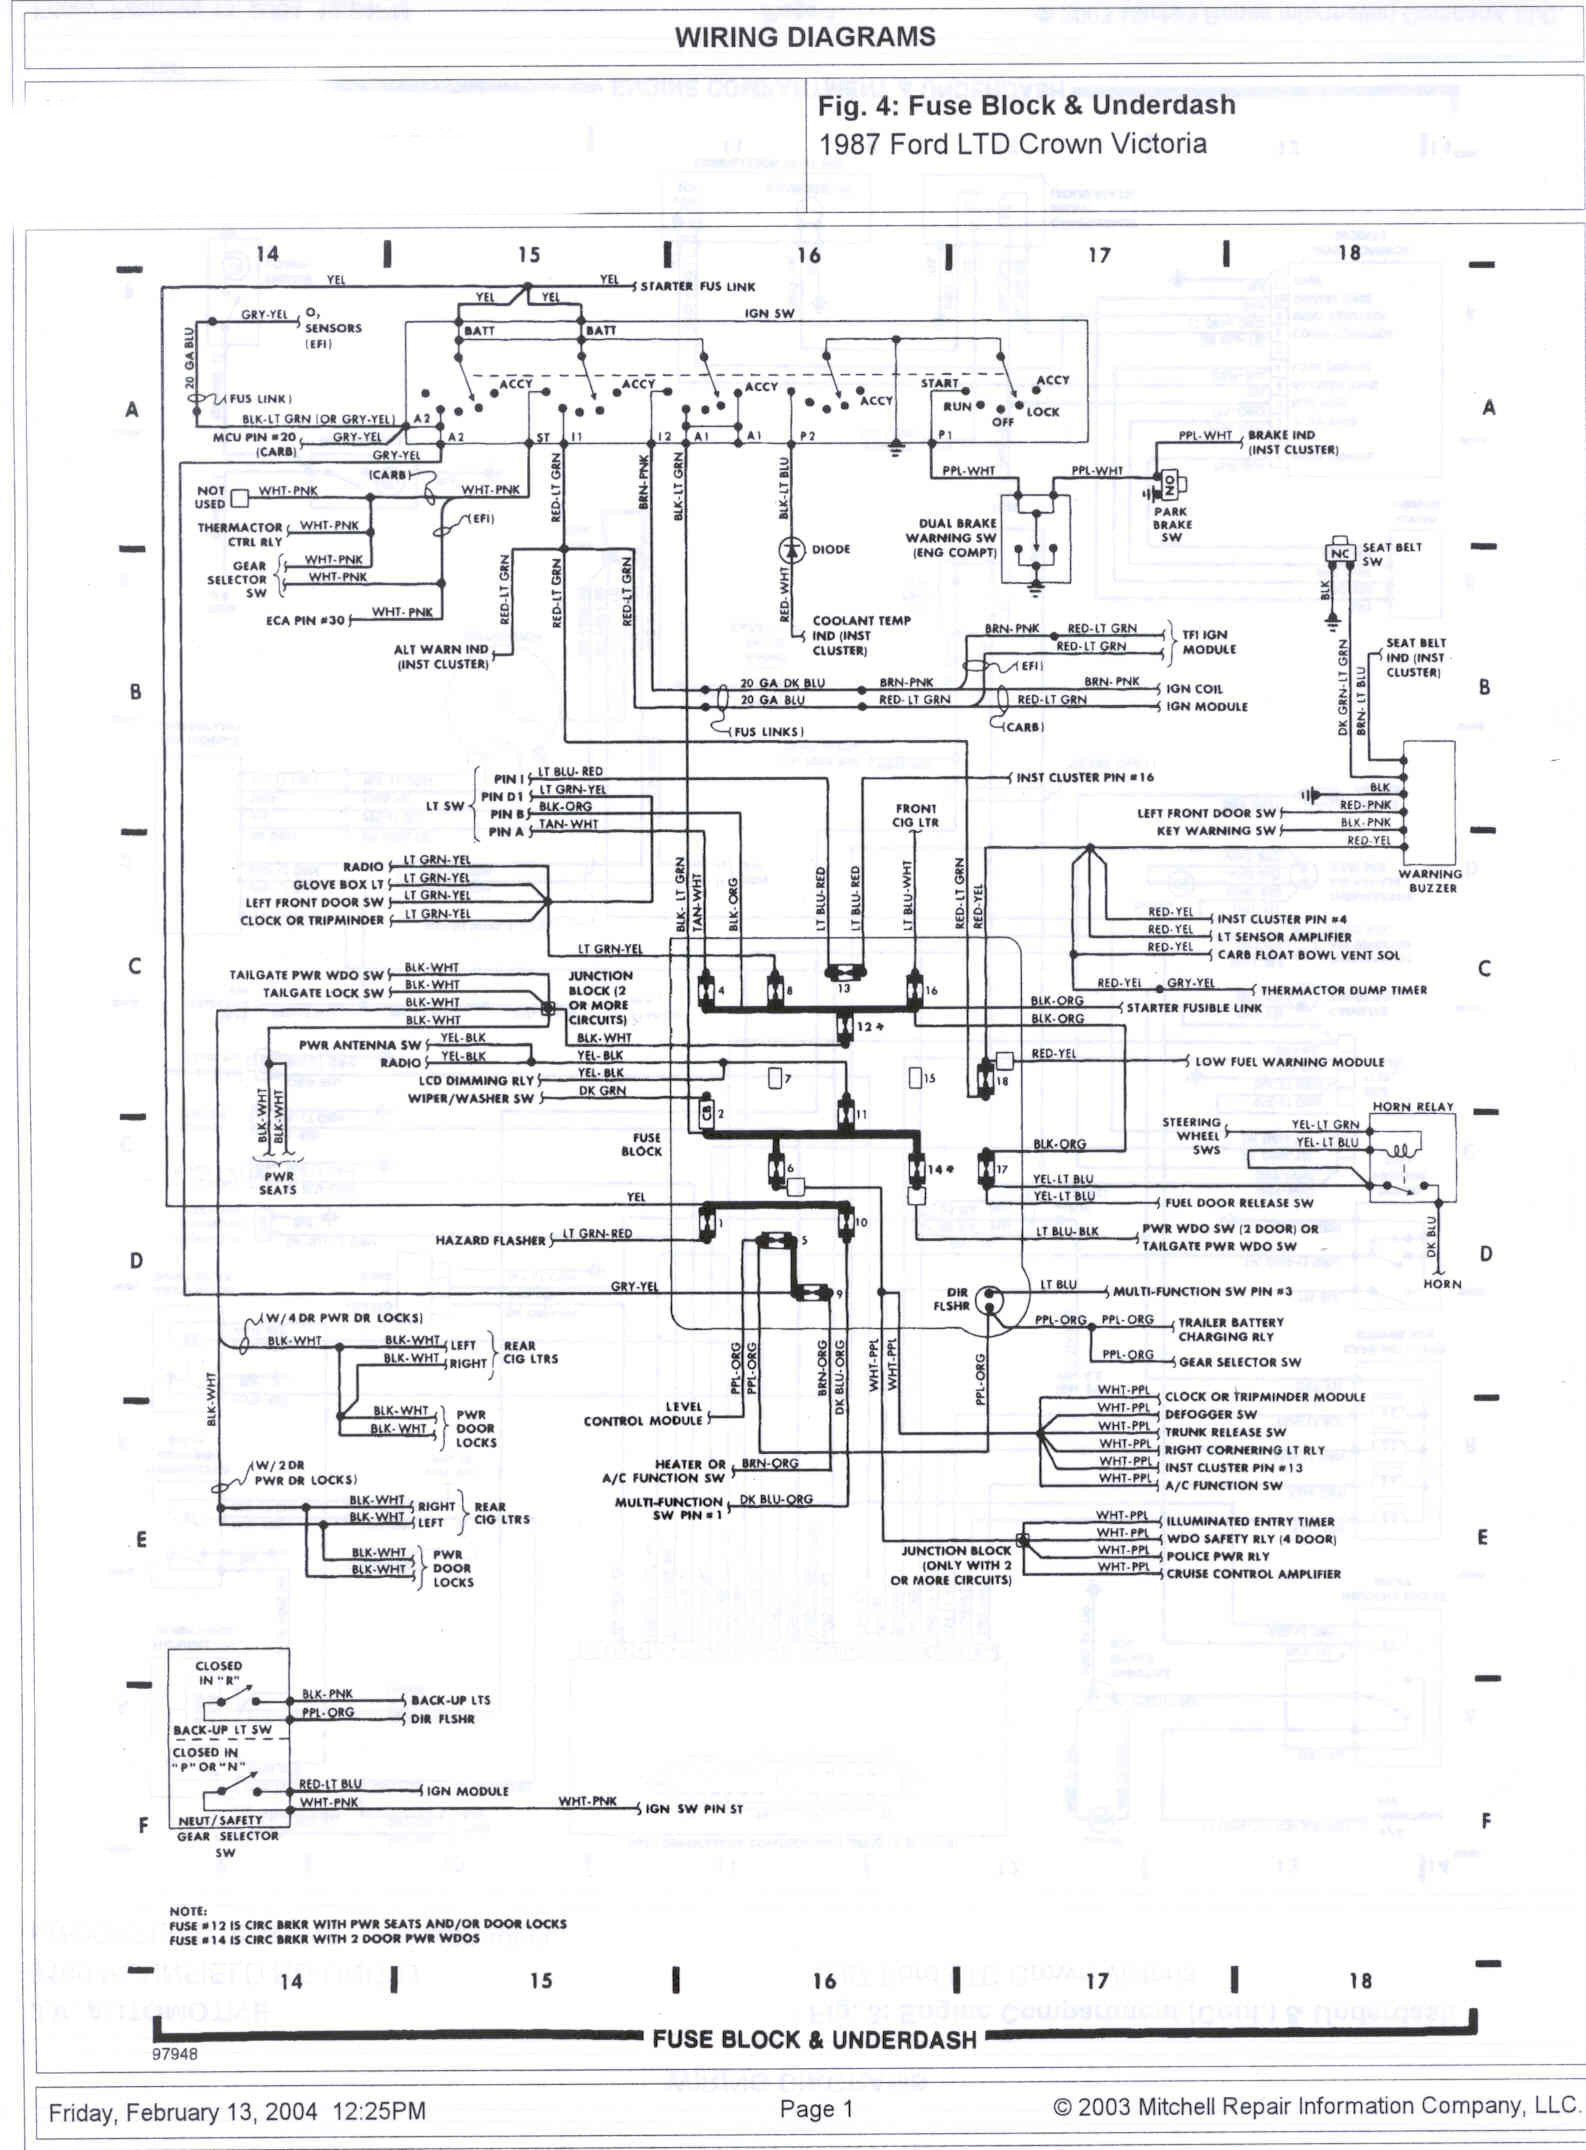 2010 crown vic fuse diagram 1985 ford crown victoria ltd wire diagrams picture ... #11